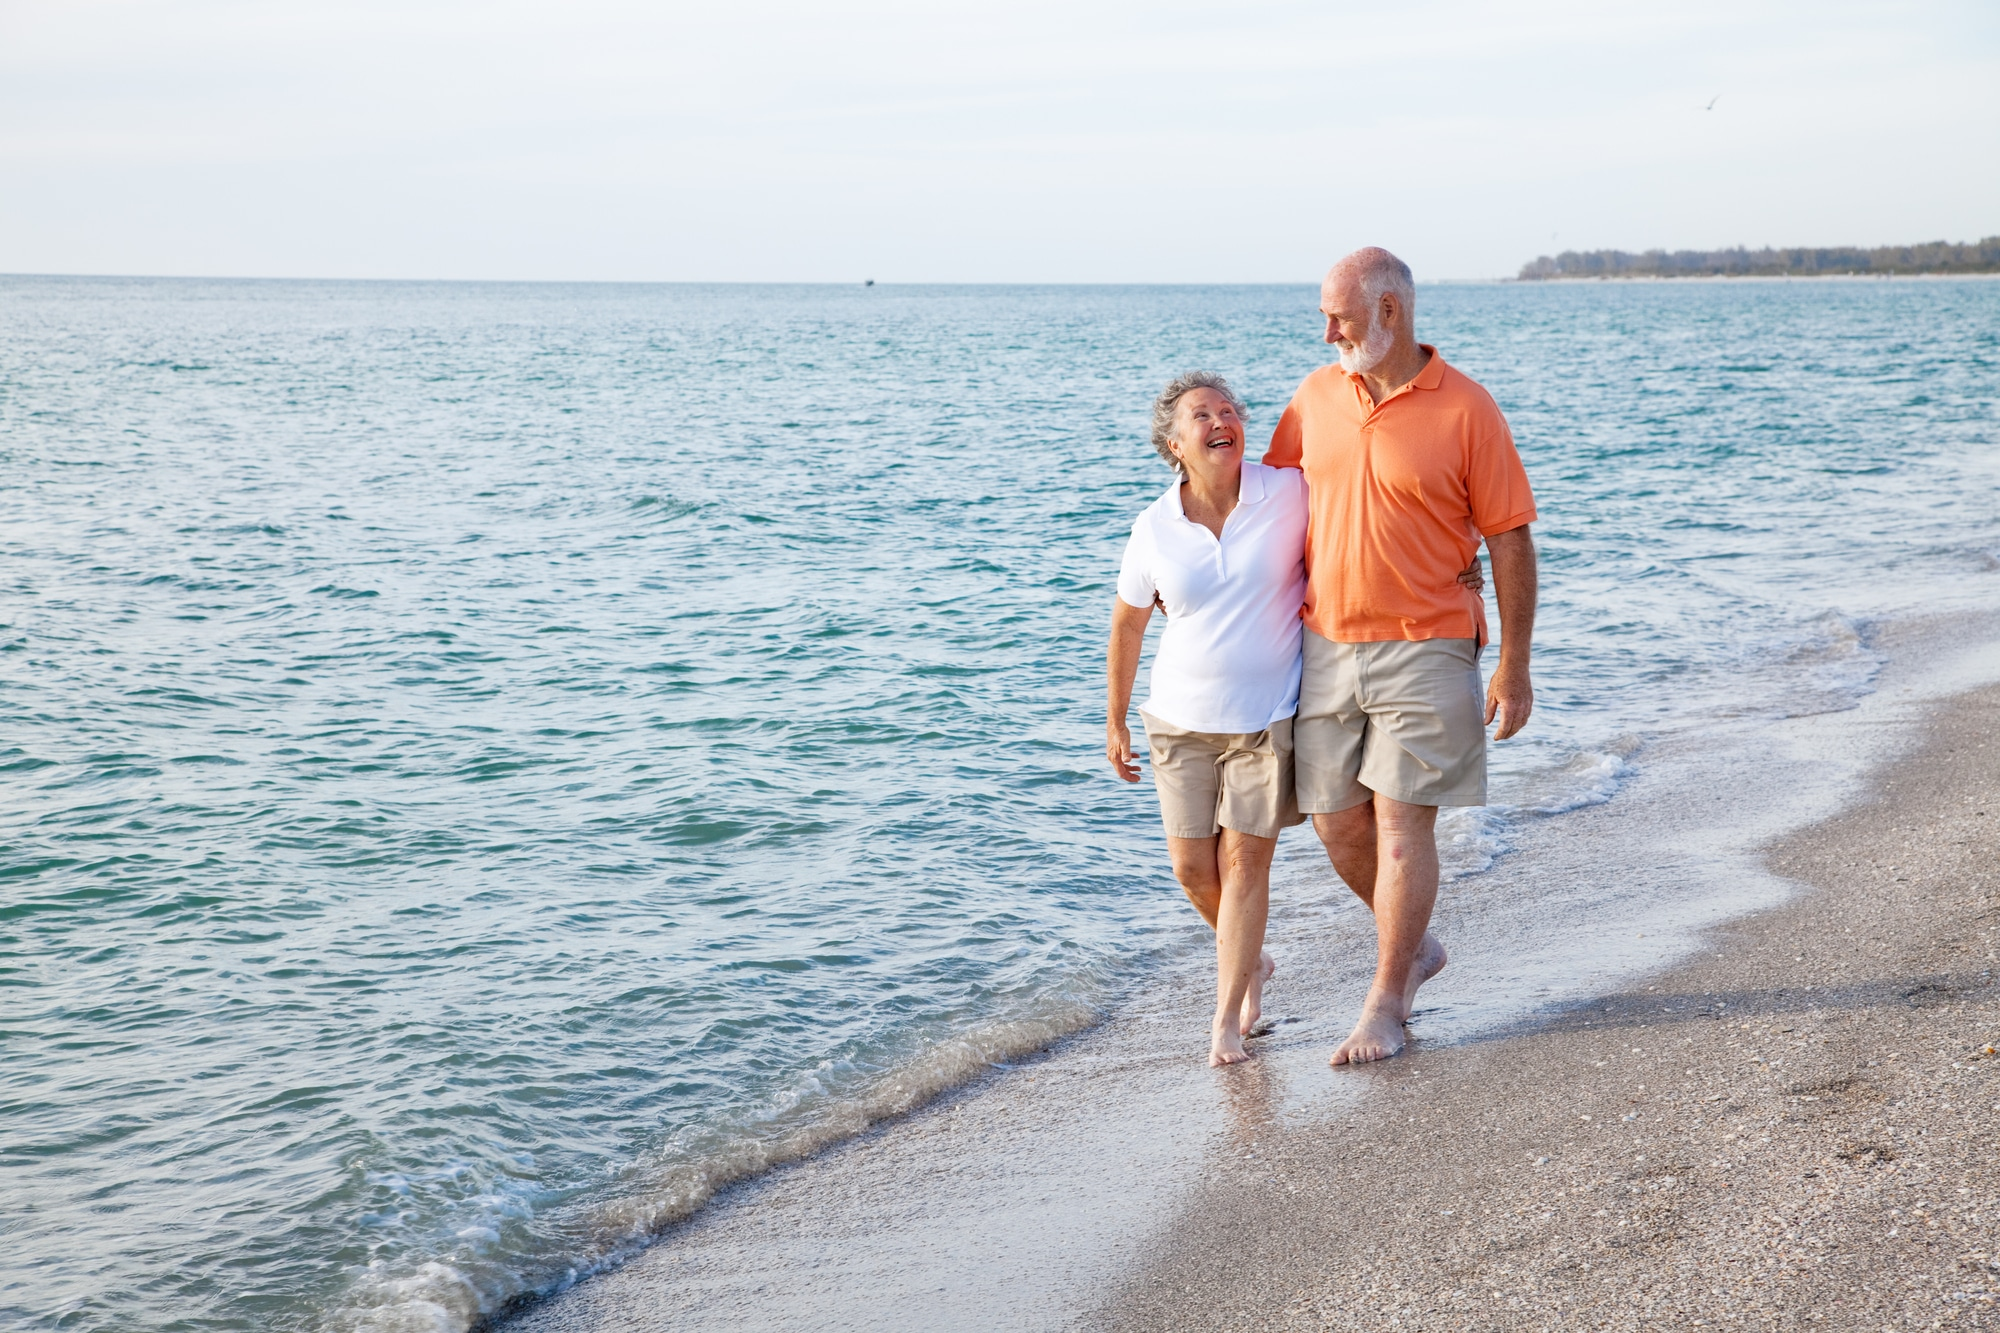 elderly couple laughing and walking on a beach